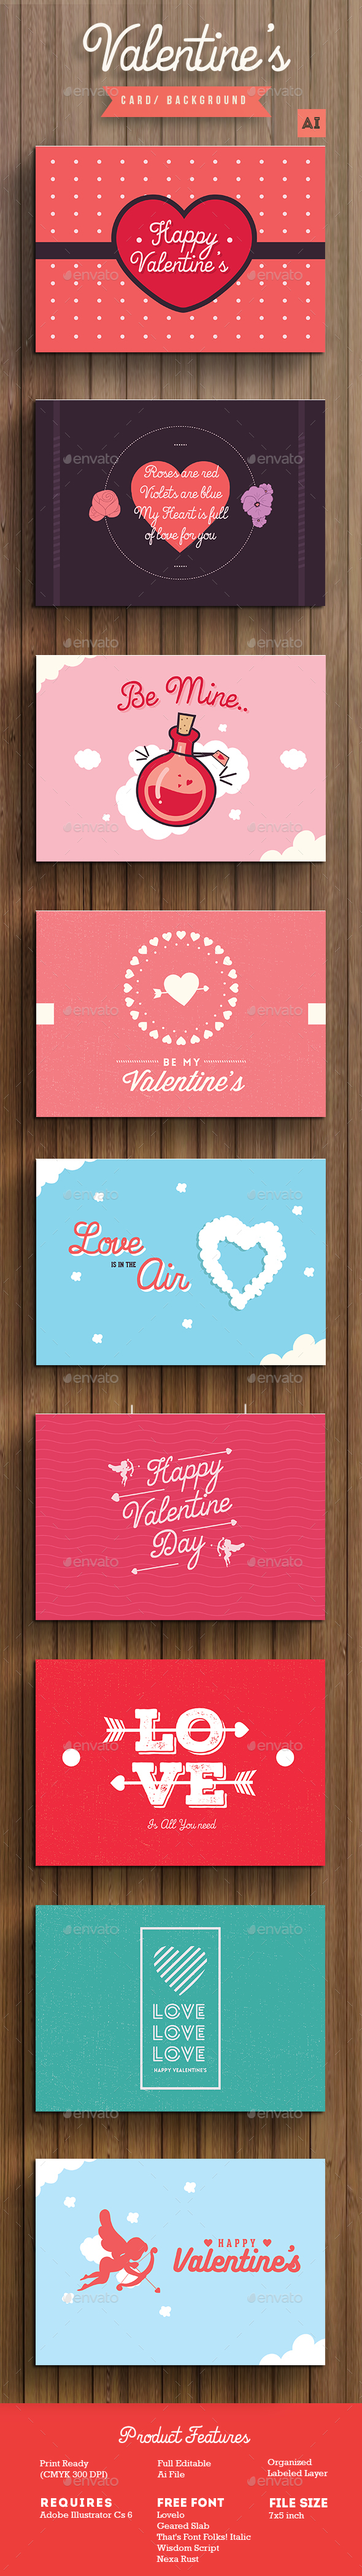 Valentine's Card / Background - Cards & Invites Print Templates